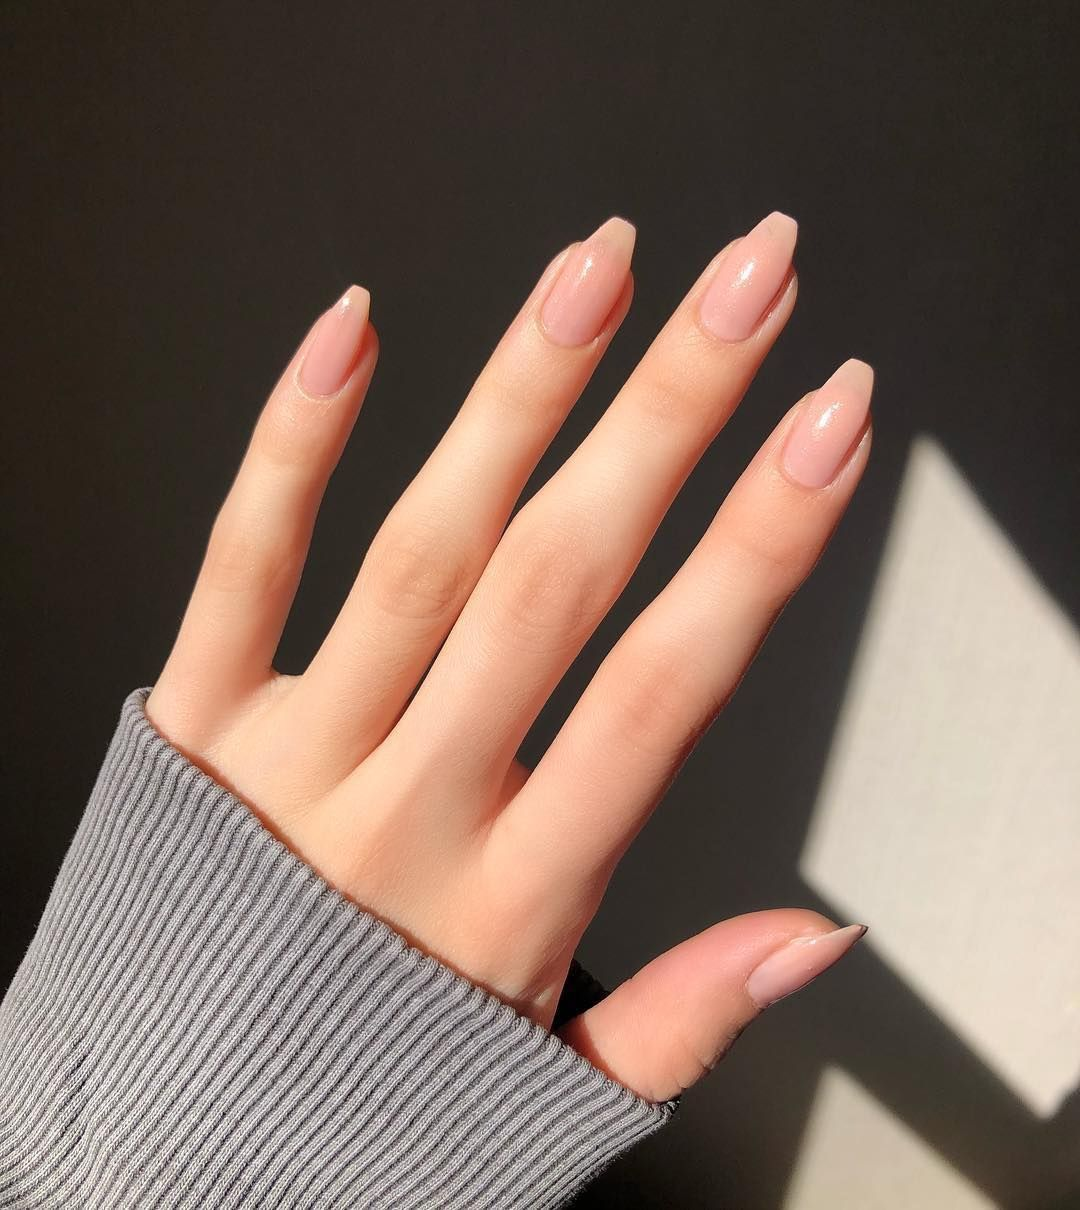 Pin By Teri Sucha On Inspo Pink Nails Cute Nails Dream Nails